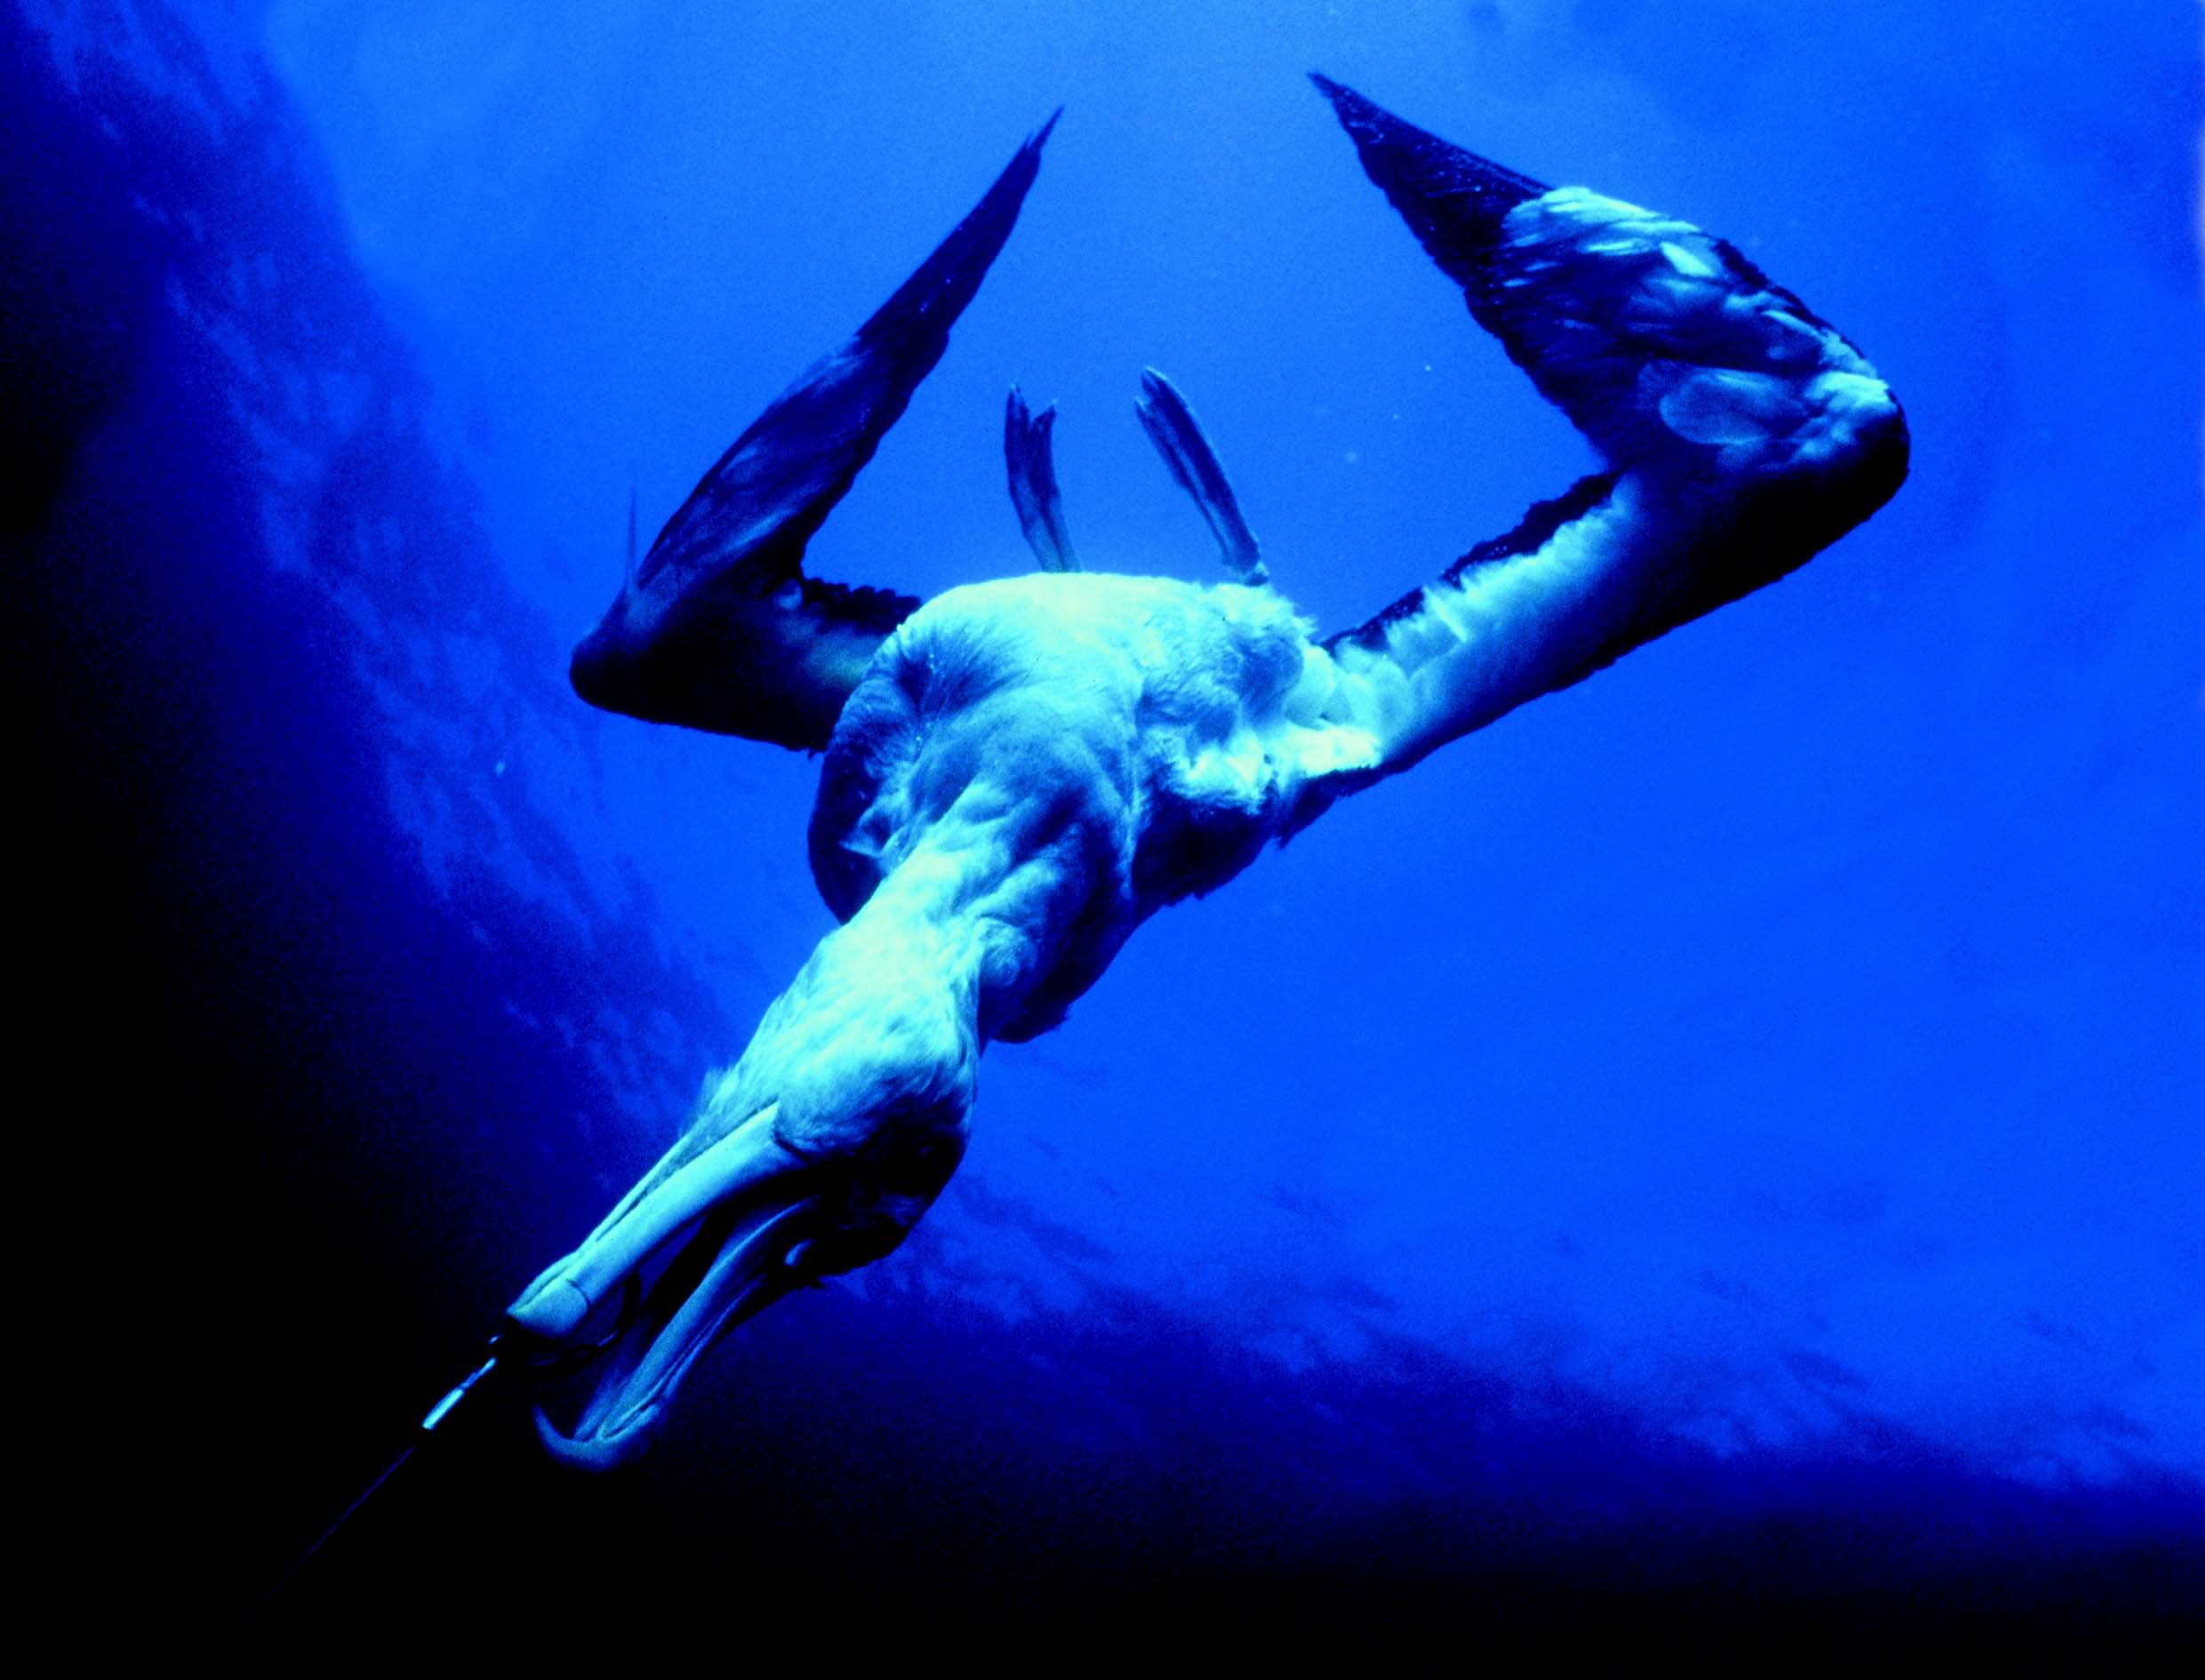 EMBARGOED UNTIL MIDNIGHT NOVEMBER 9, 2004 - A wandering albatross, caught on a longline hook is dragged under water in this undated file photo. Satellite tracking data has shown the global zones where longline fishing trawlers and albatrosses cross paths, often with fatal consequences for the majestic sea birds, according to a report collated by UK-based BirdLife International and the Royal Society for the Protection of Birds (RSPB). More than 300,000 seabirds, including 100,000 albatrosses,are believed to drown each year because they are lured by baited hooks and then pulled under the water. NO ARCHIVE REUTERS/HO/RSPB/Graham Robertson/Australian Antarctic Division